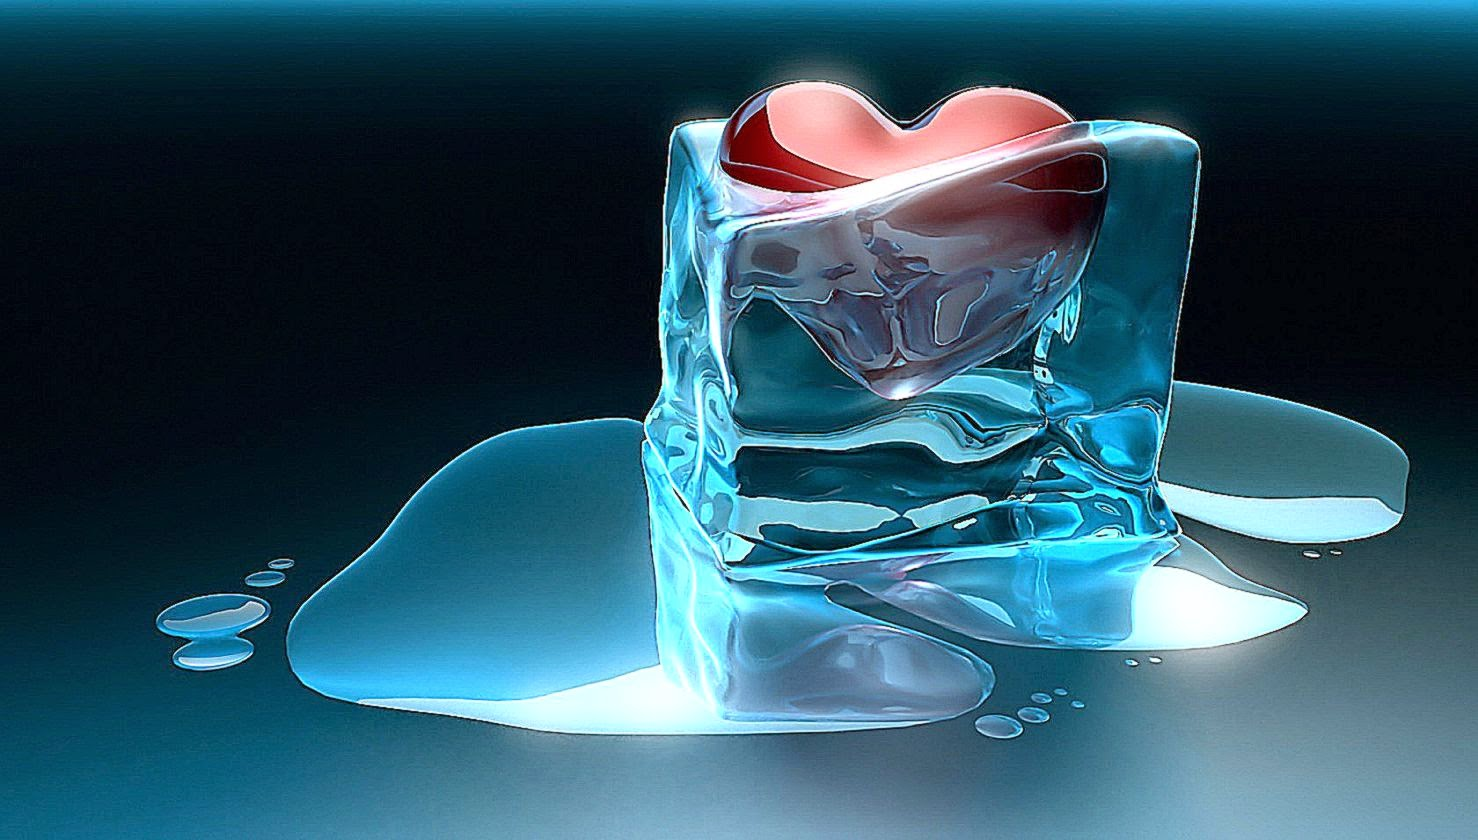 Melting Heart Ice 3D Wallpapers Hd